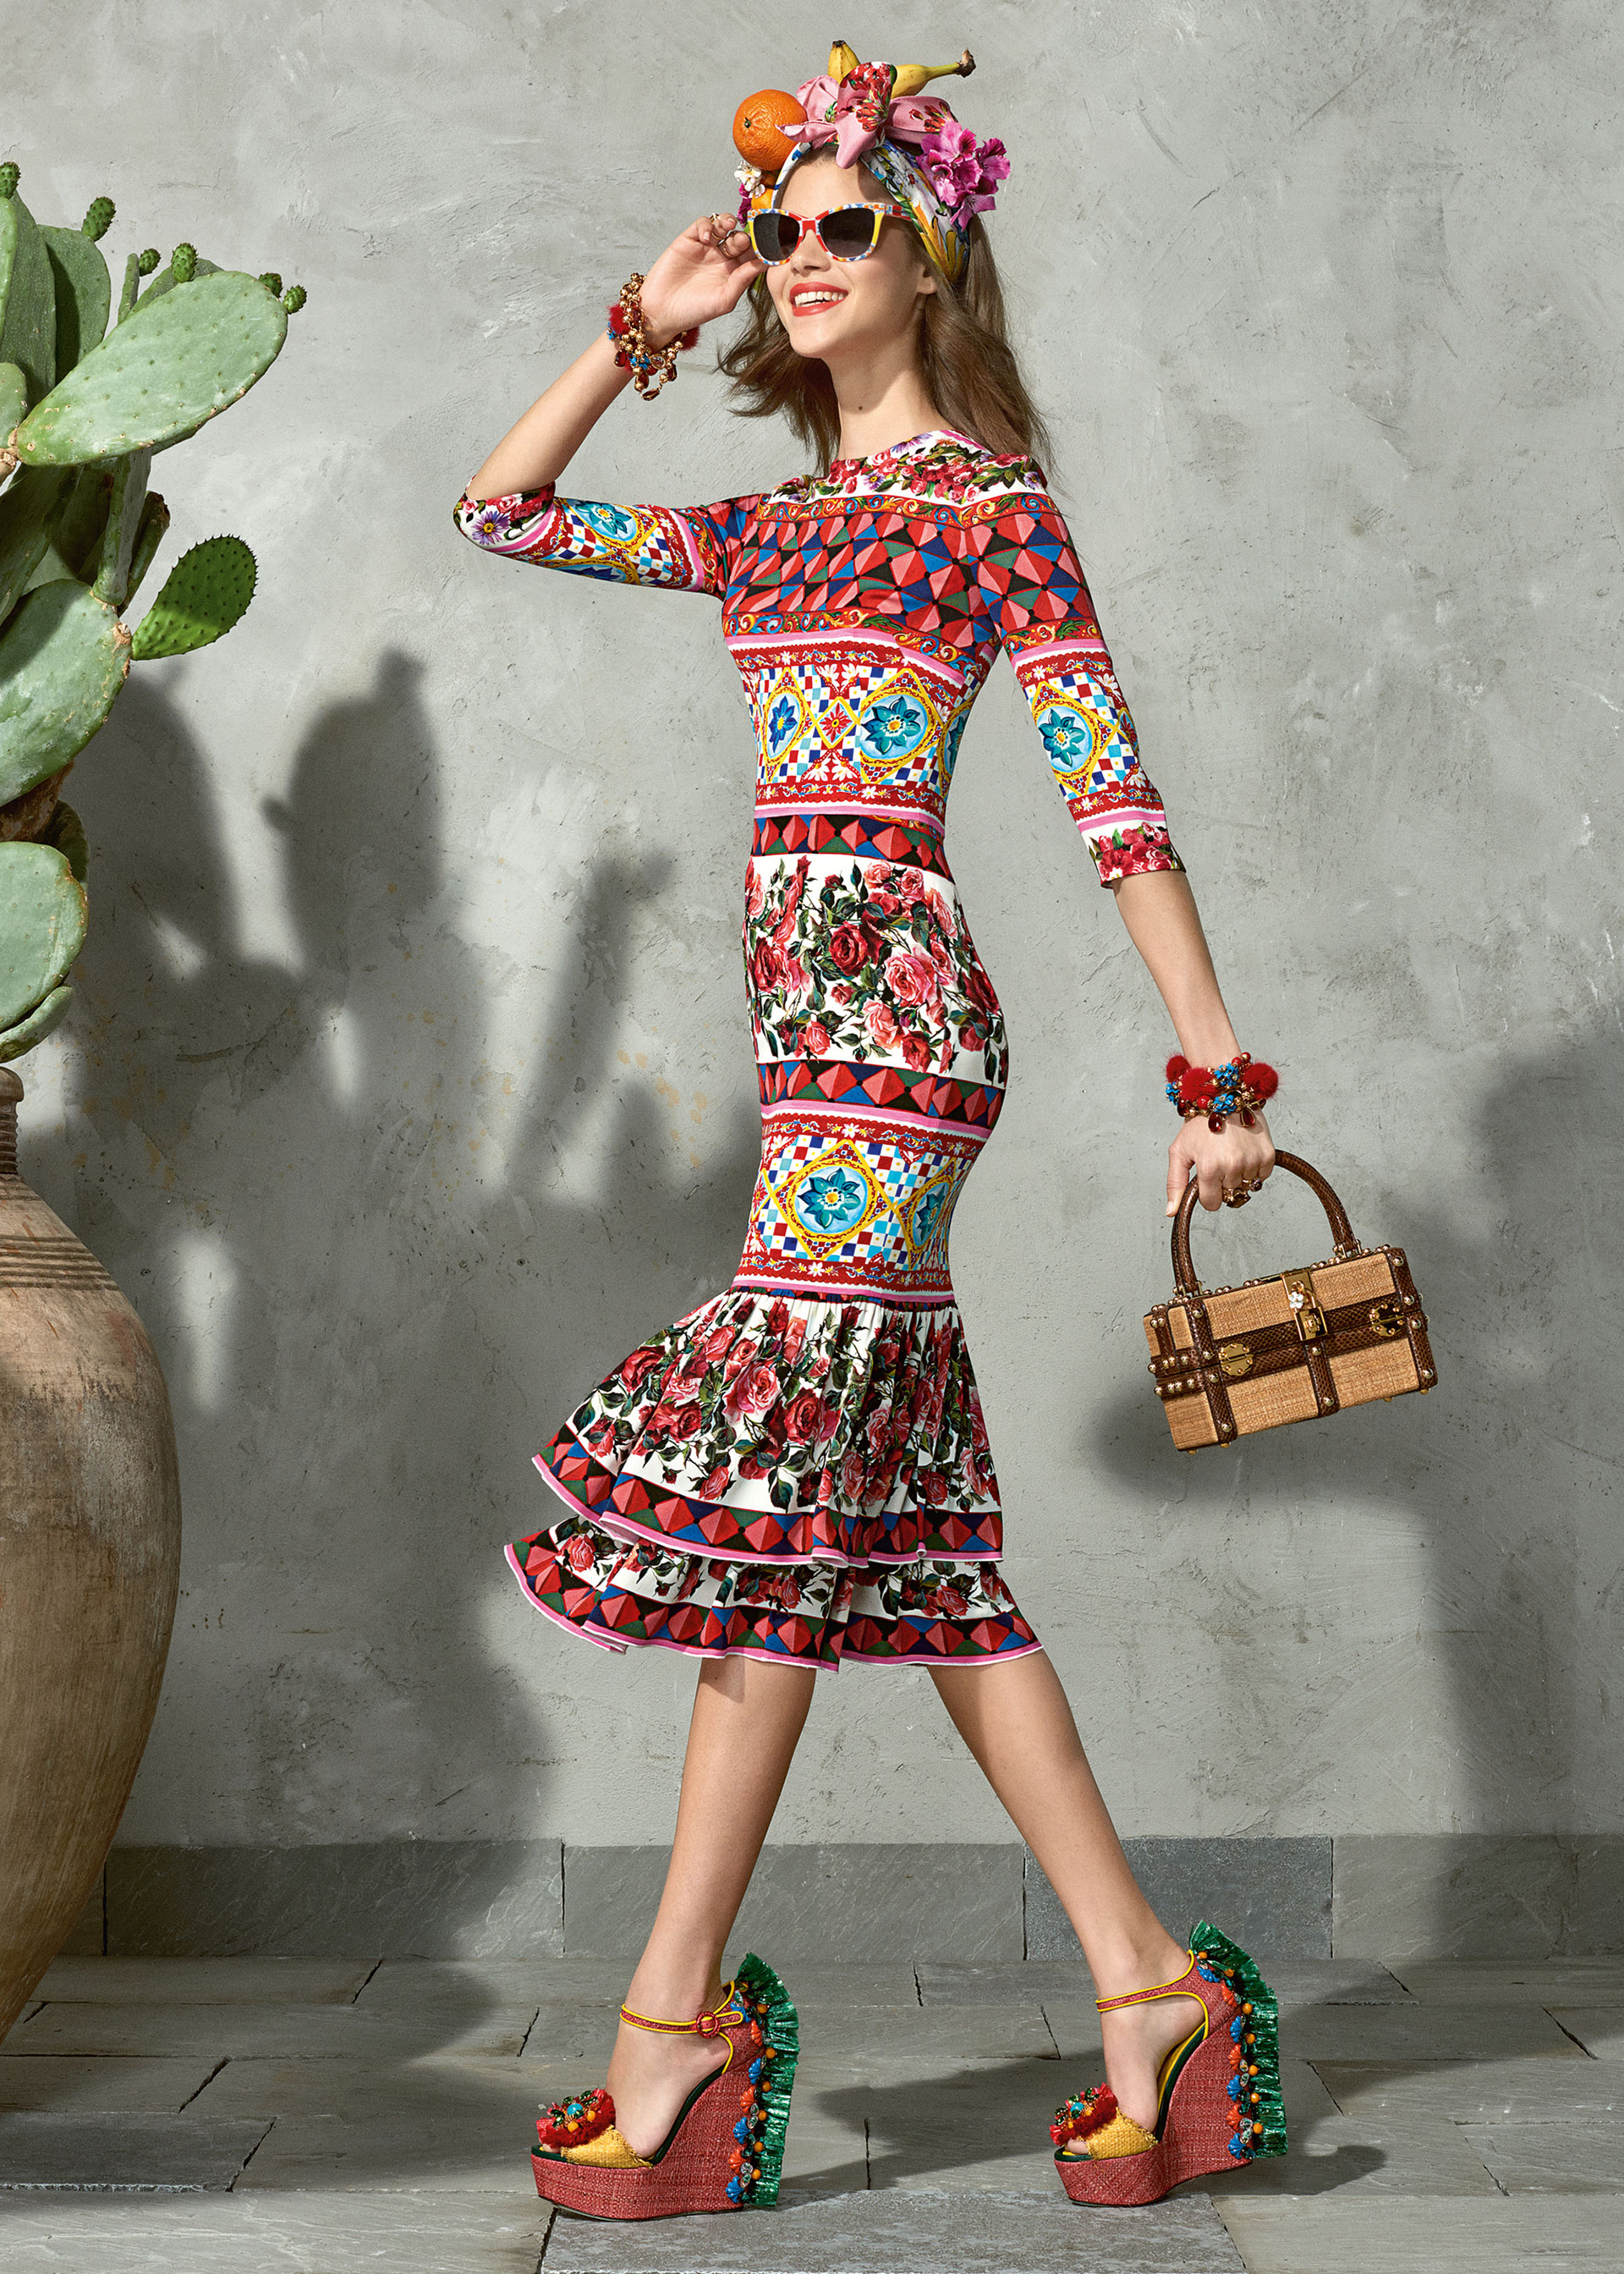 dolce and gabbana summer 2017 woman collection 94 - Dolce & Gabbana/Spring Summer 2017 Collection/ Mambo